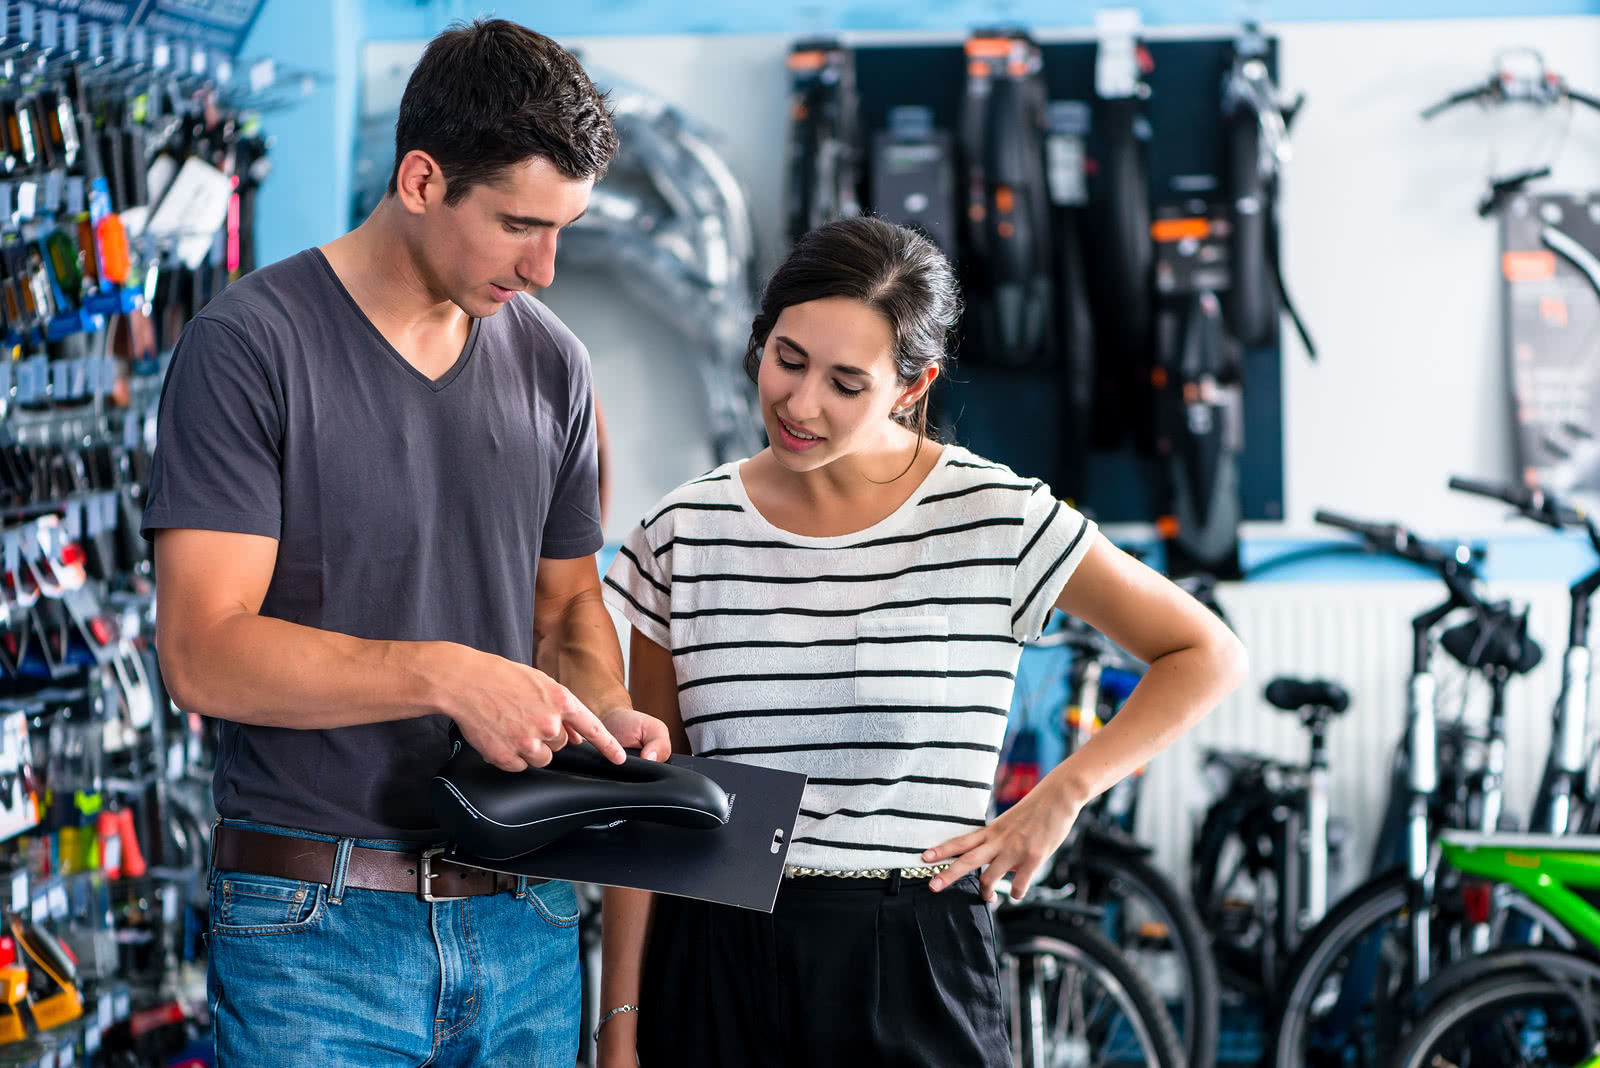 Male bike shop employee shows bike parts to a female customer